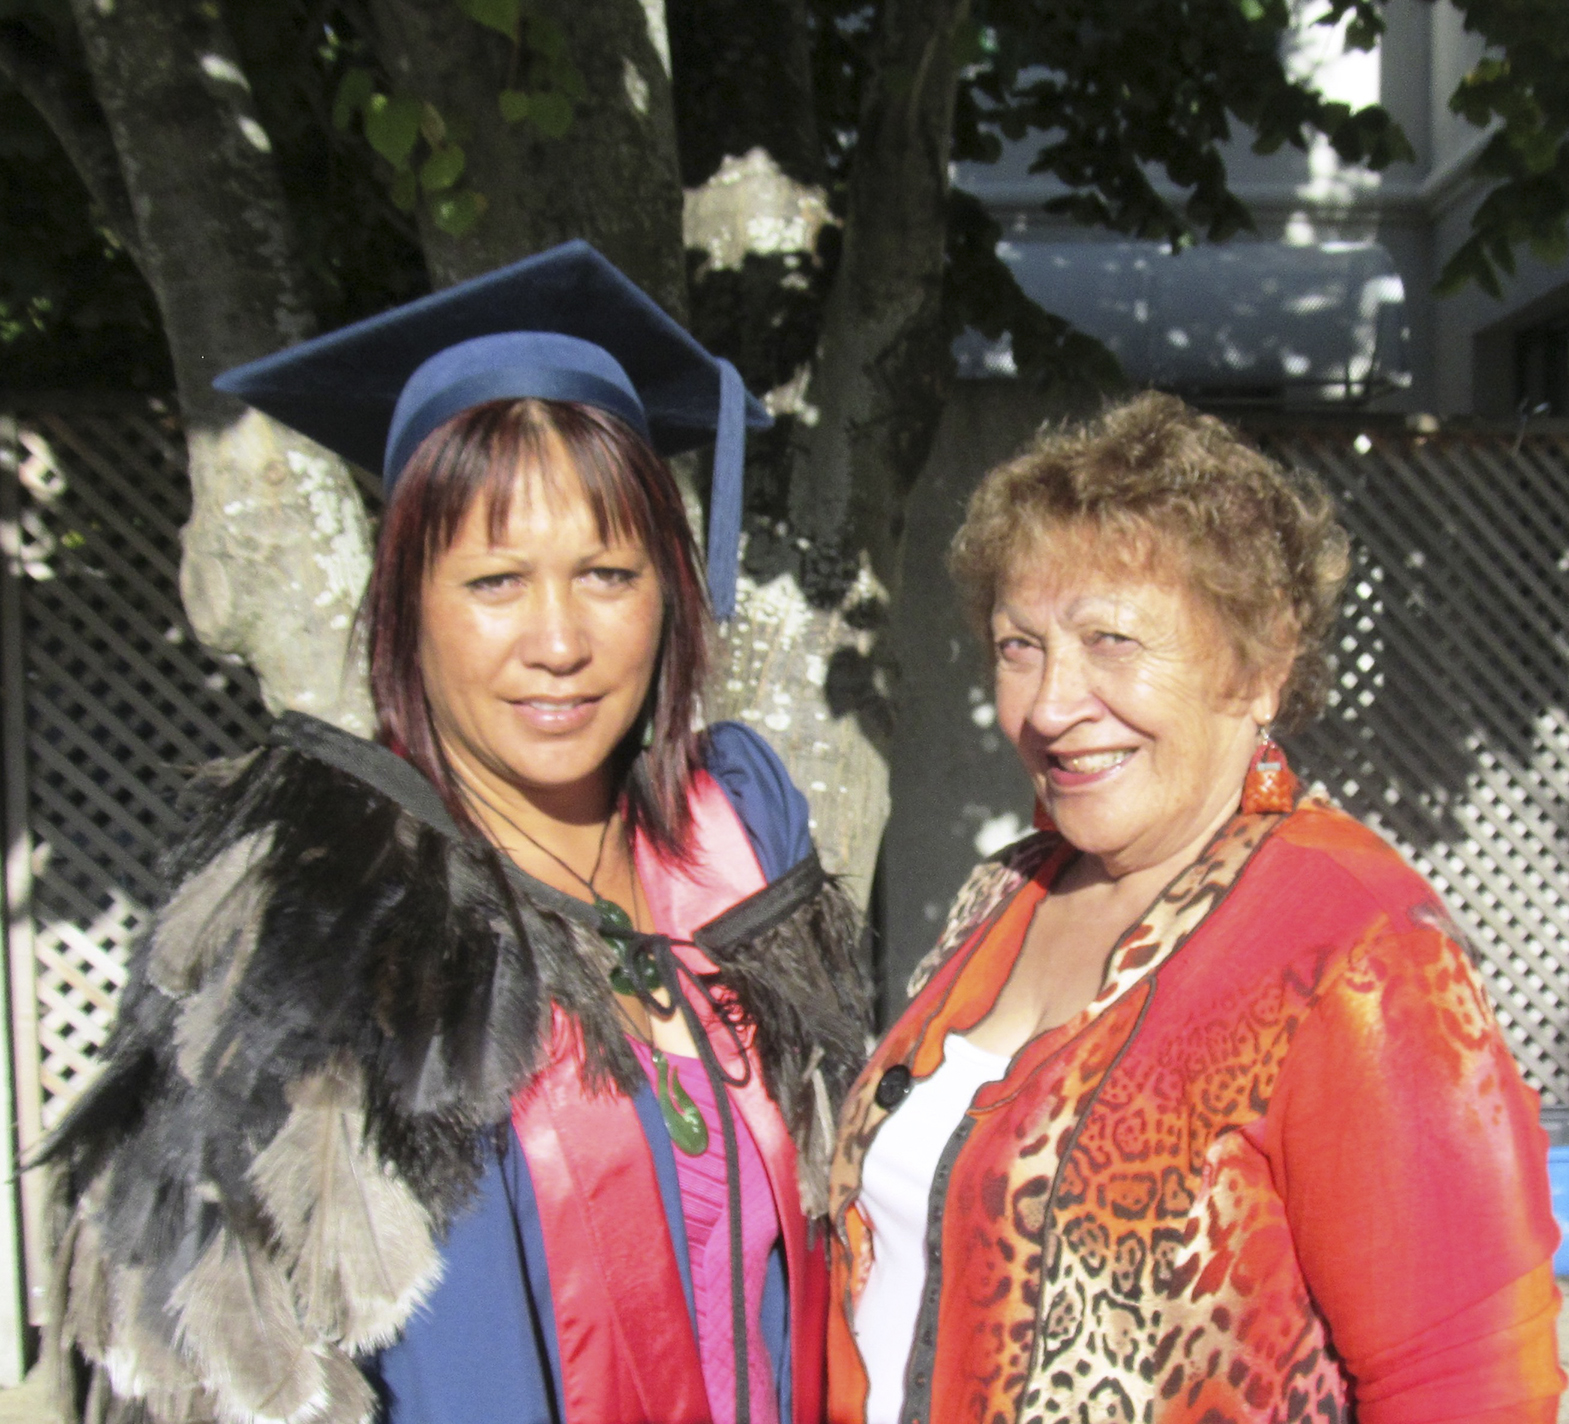 Vania with her proud mother on graduation day.